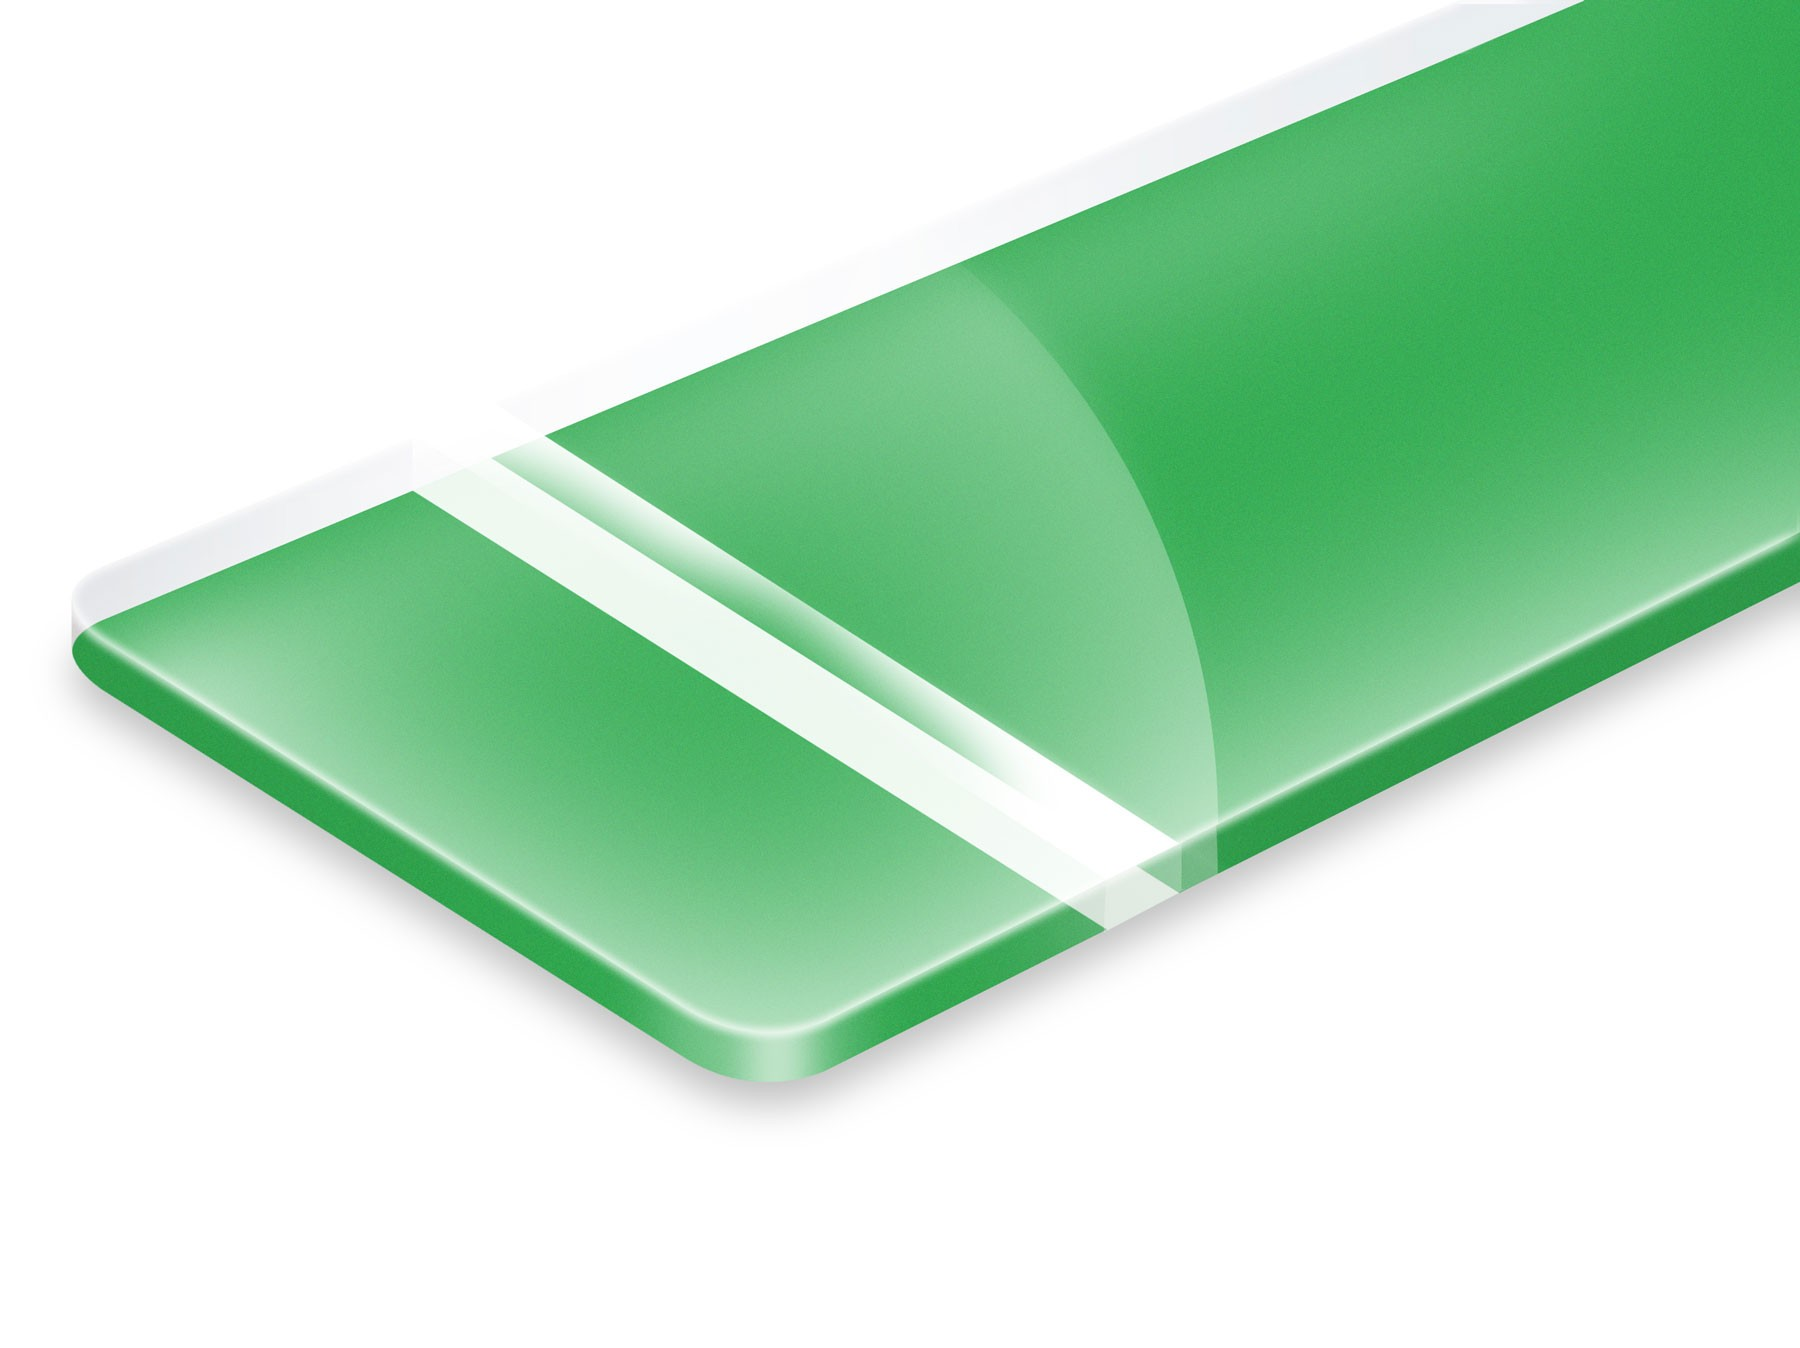 PHR900-209 Clear/Bright Green 3,2mm